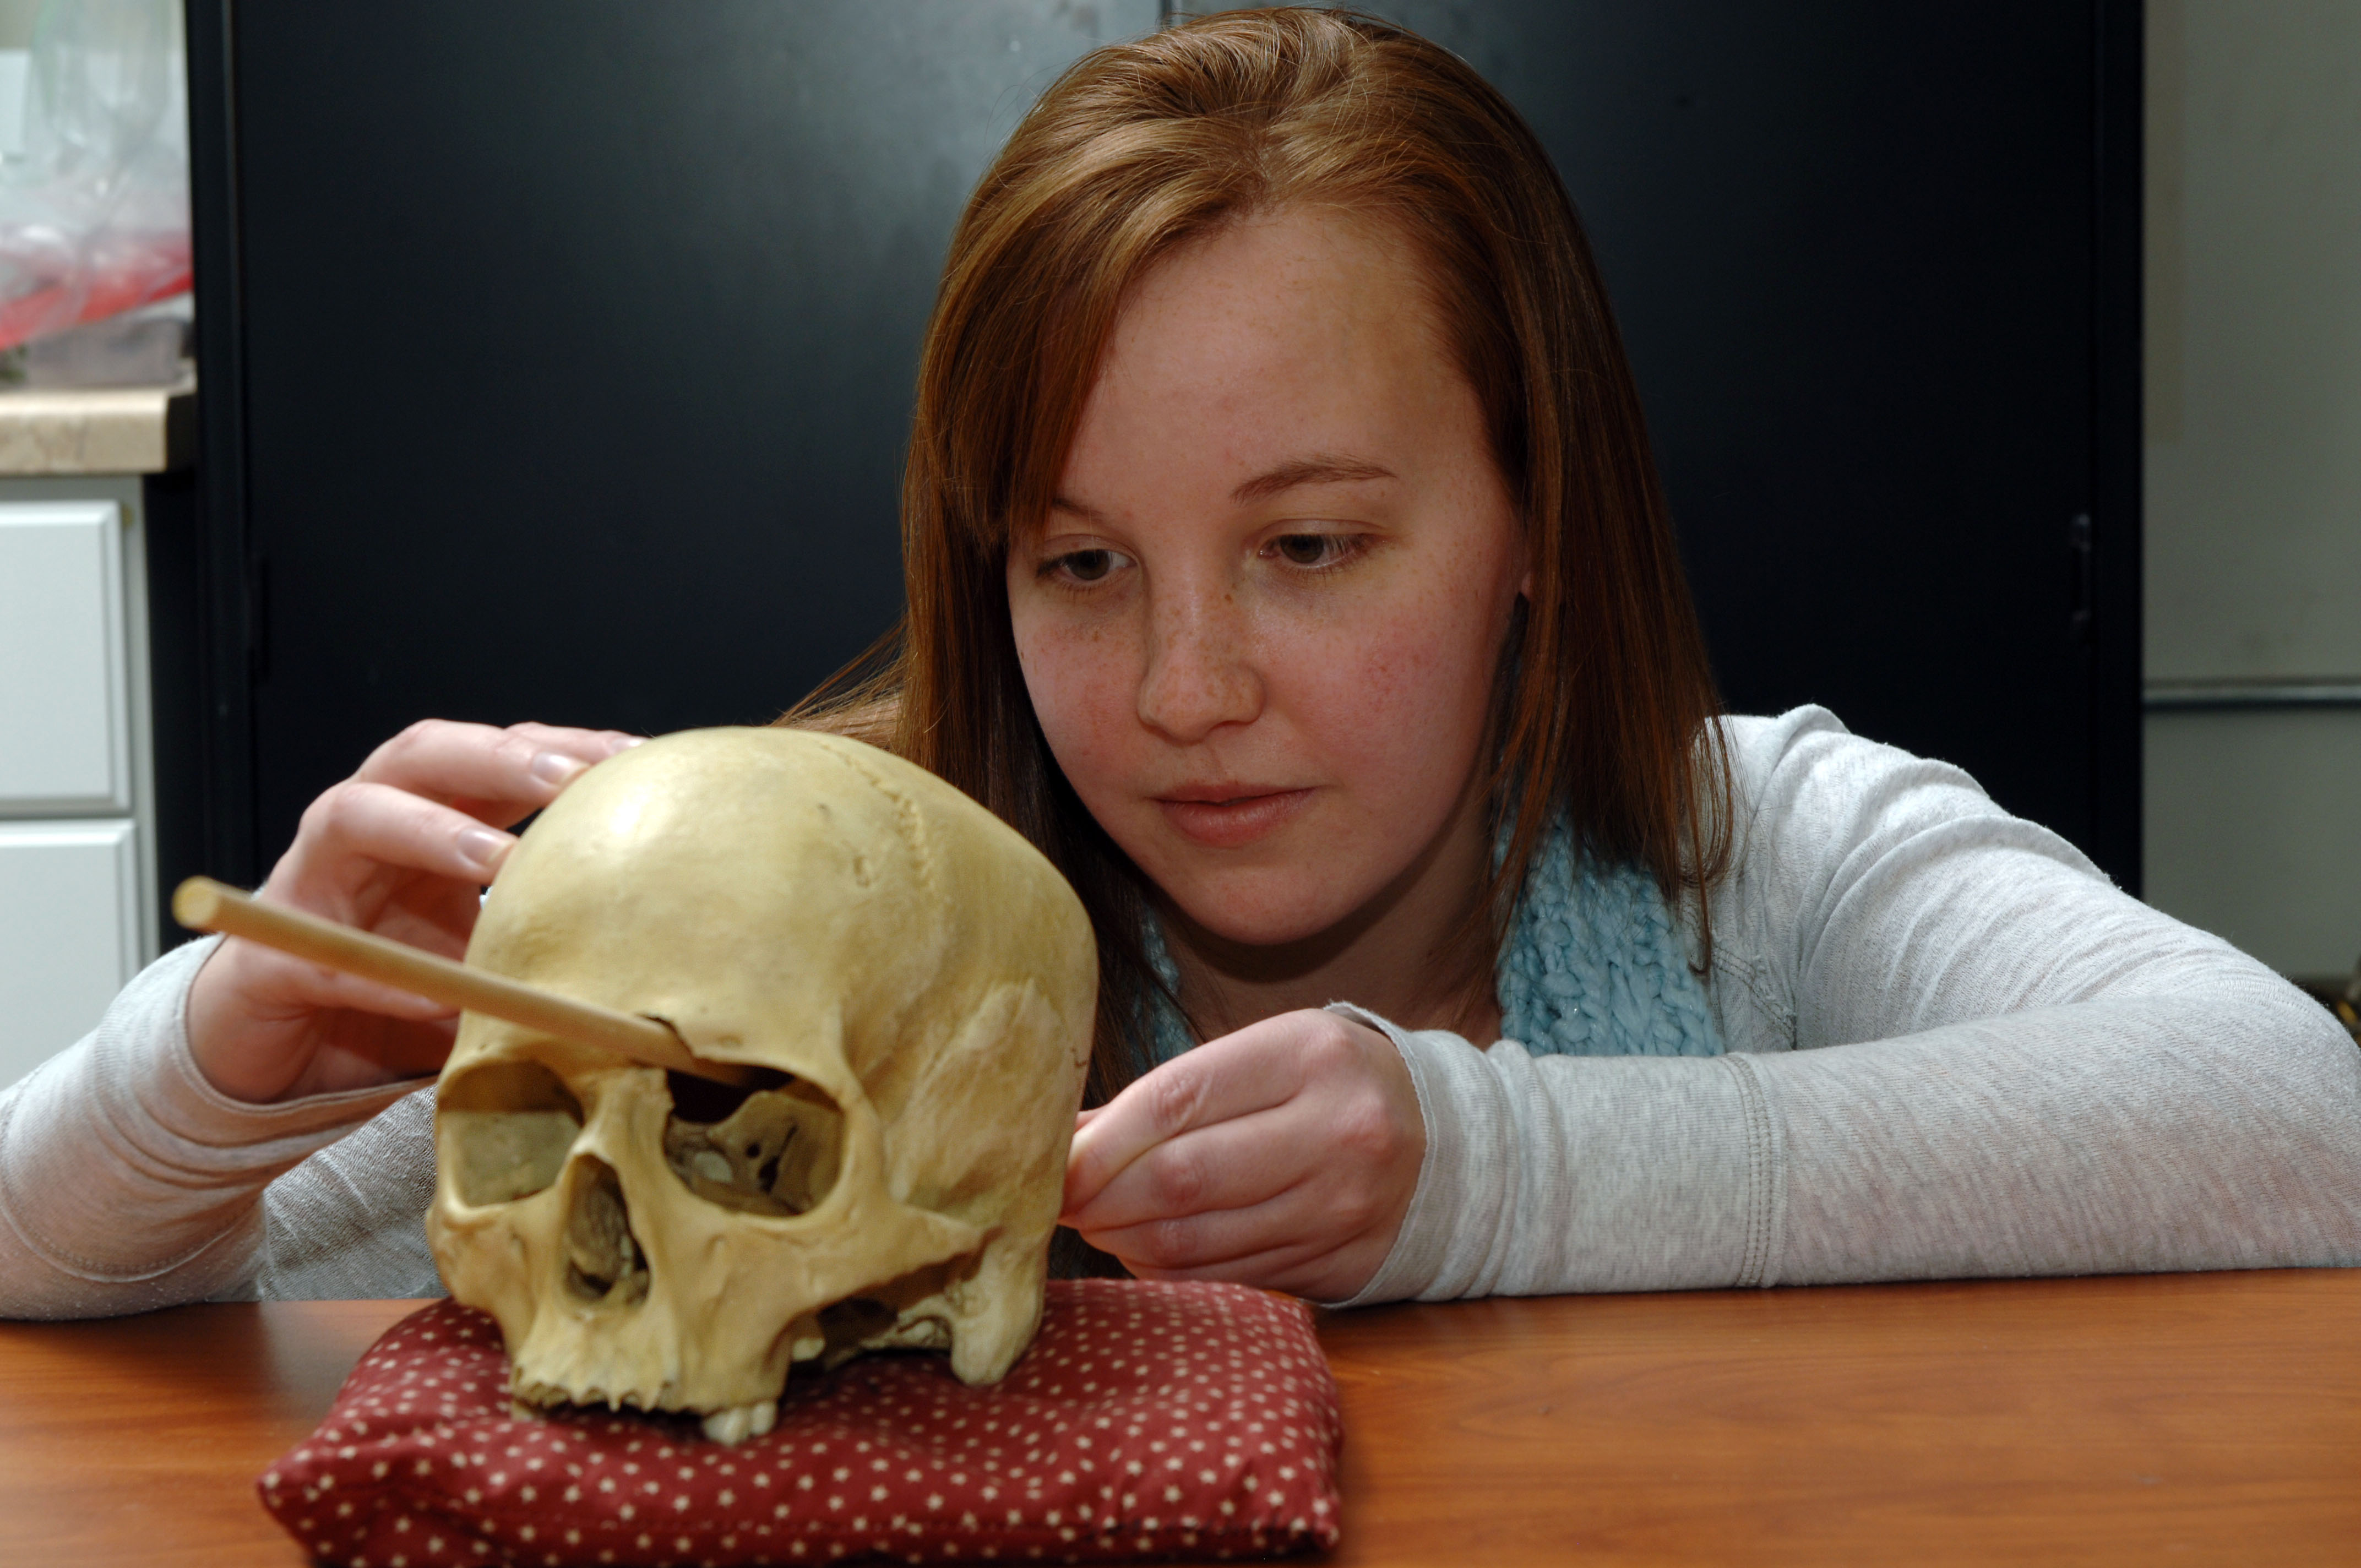 Forensic anthropologist gets to the bare bones